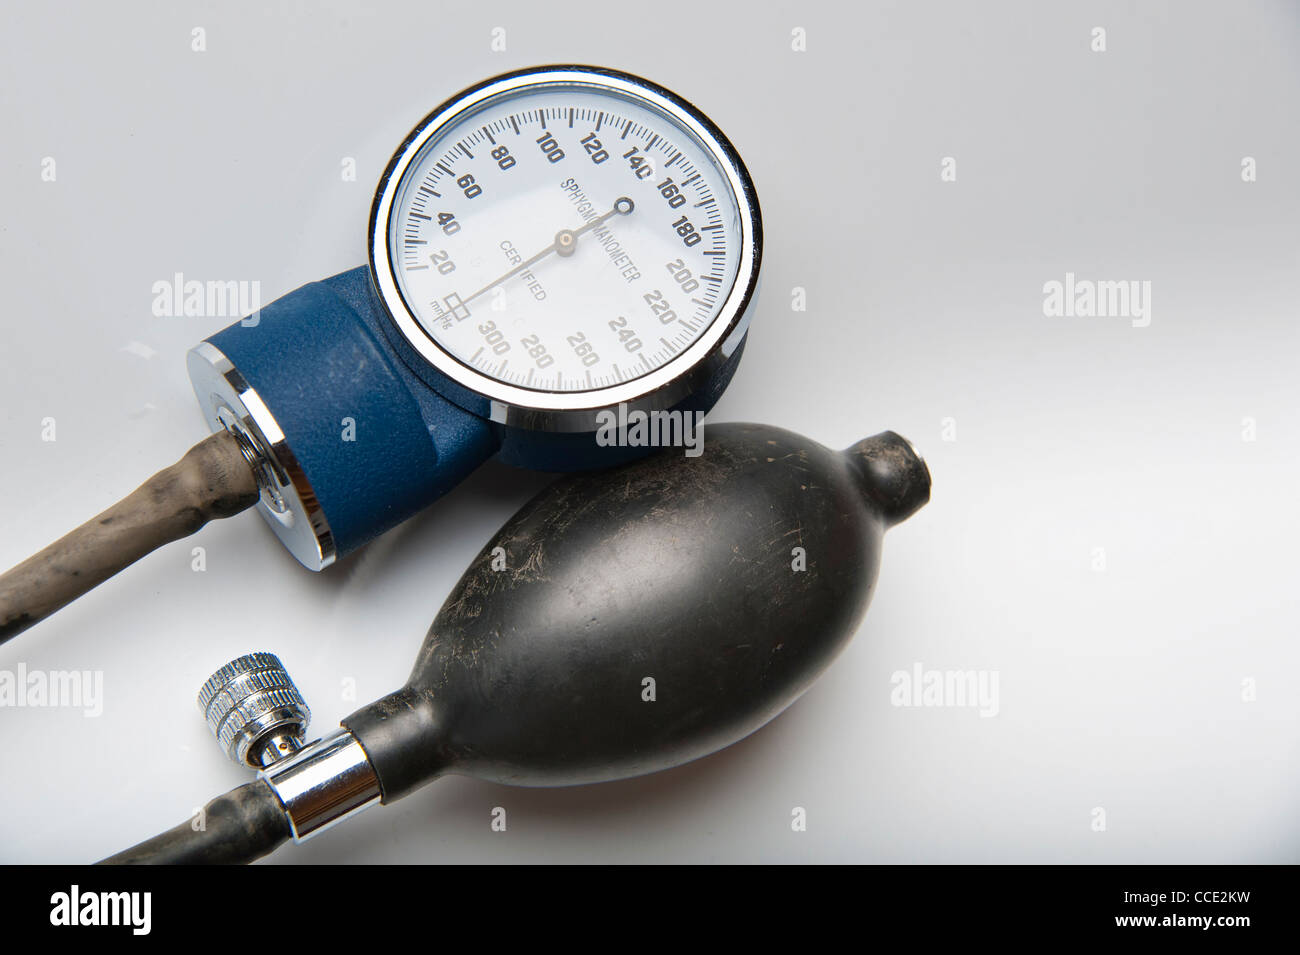 Closeup of Sphygmomanometer - Stock Image